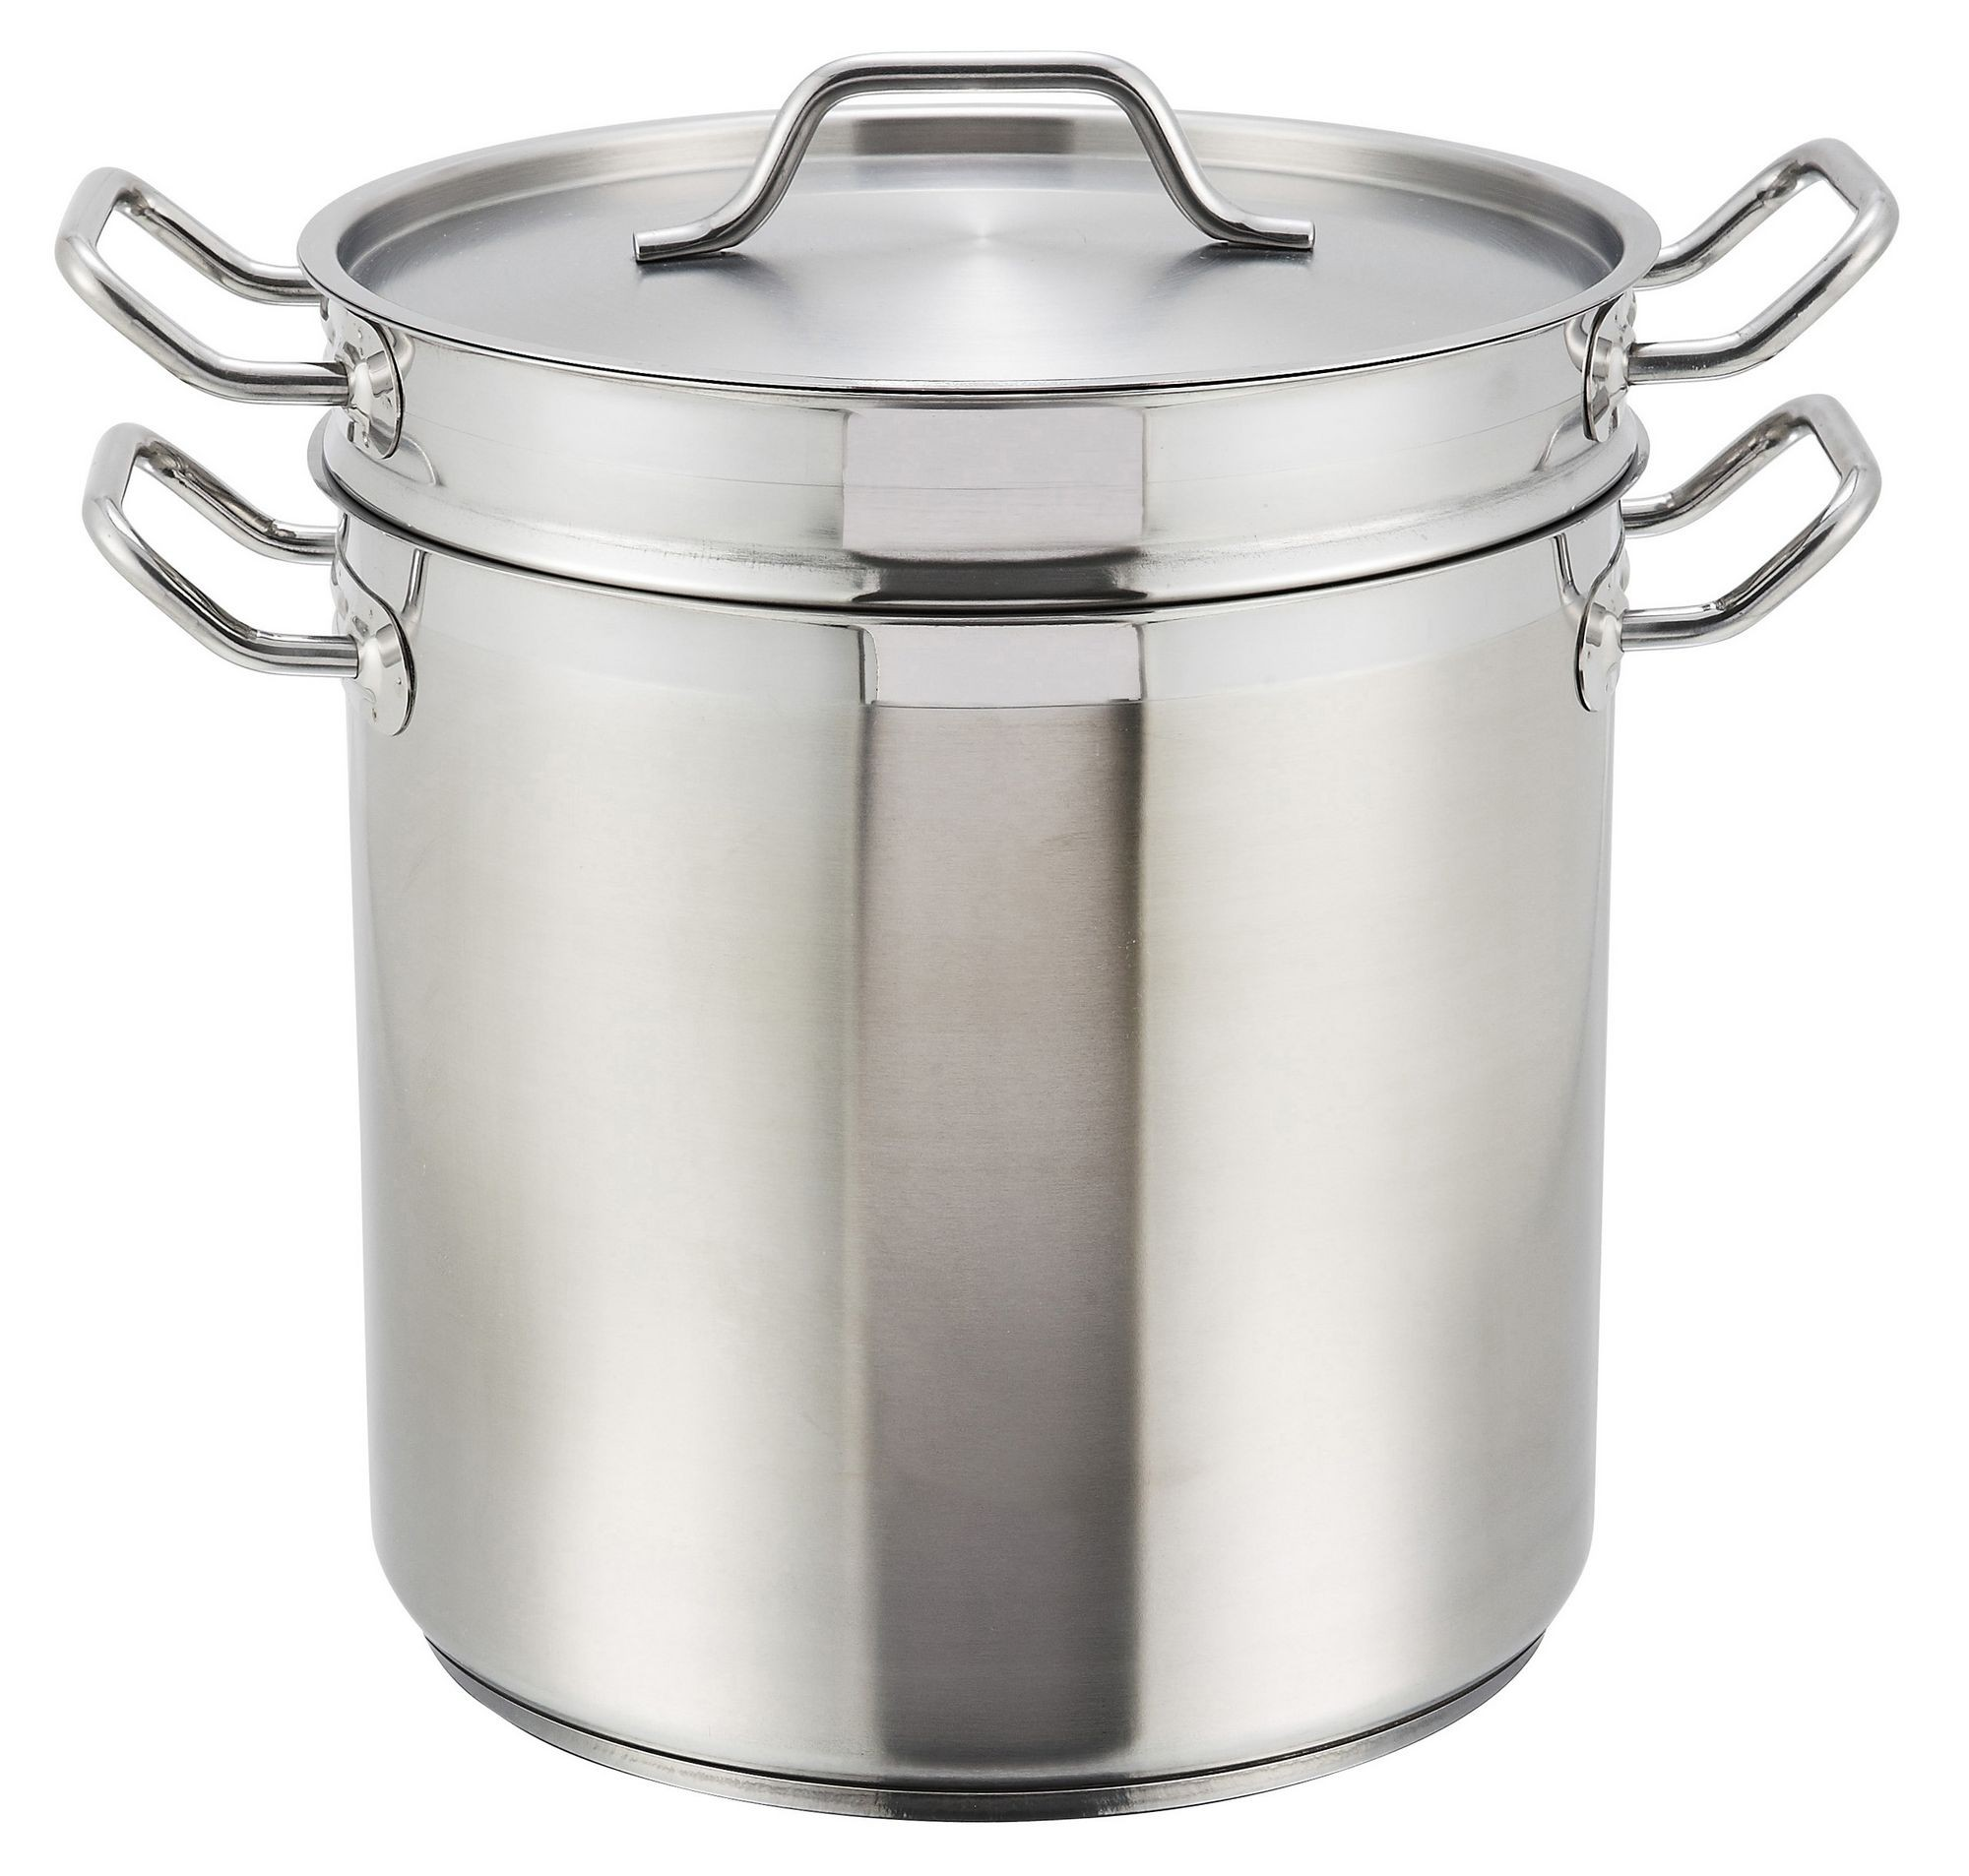 Winco SSDB-12S Stainless Steel 12 Qt. Steamer/Pasta Cooker with Cover